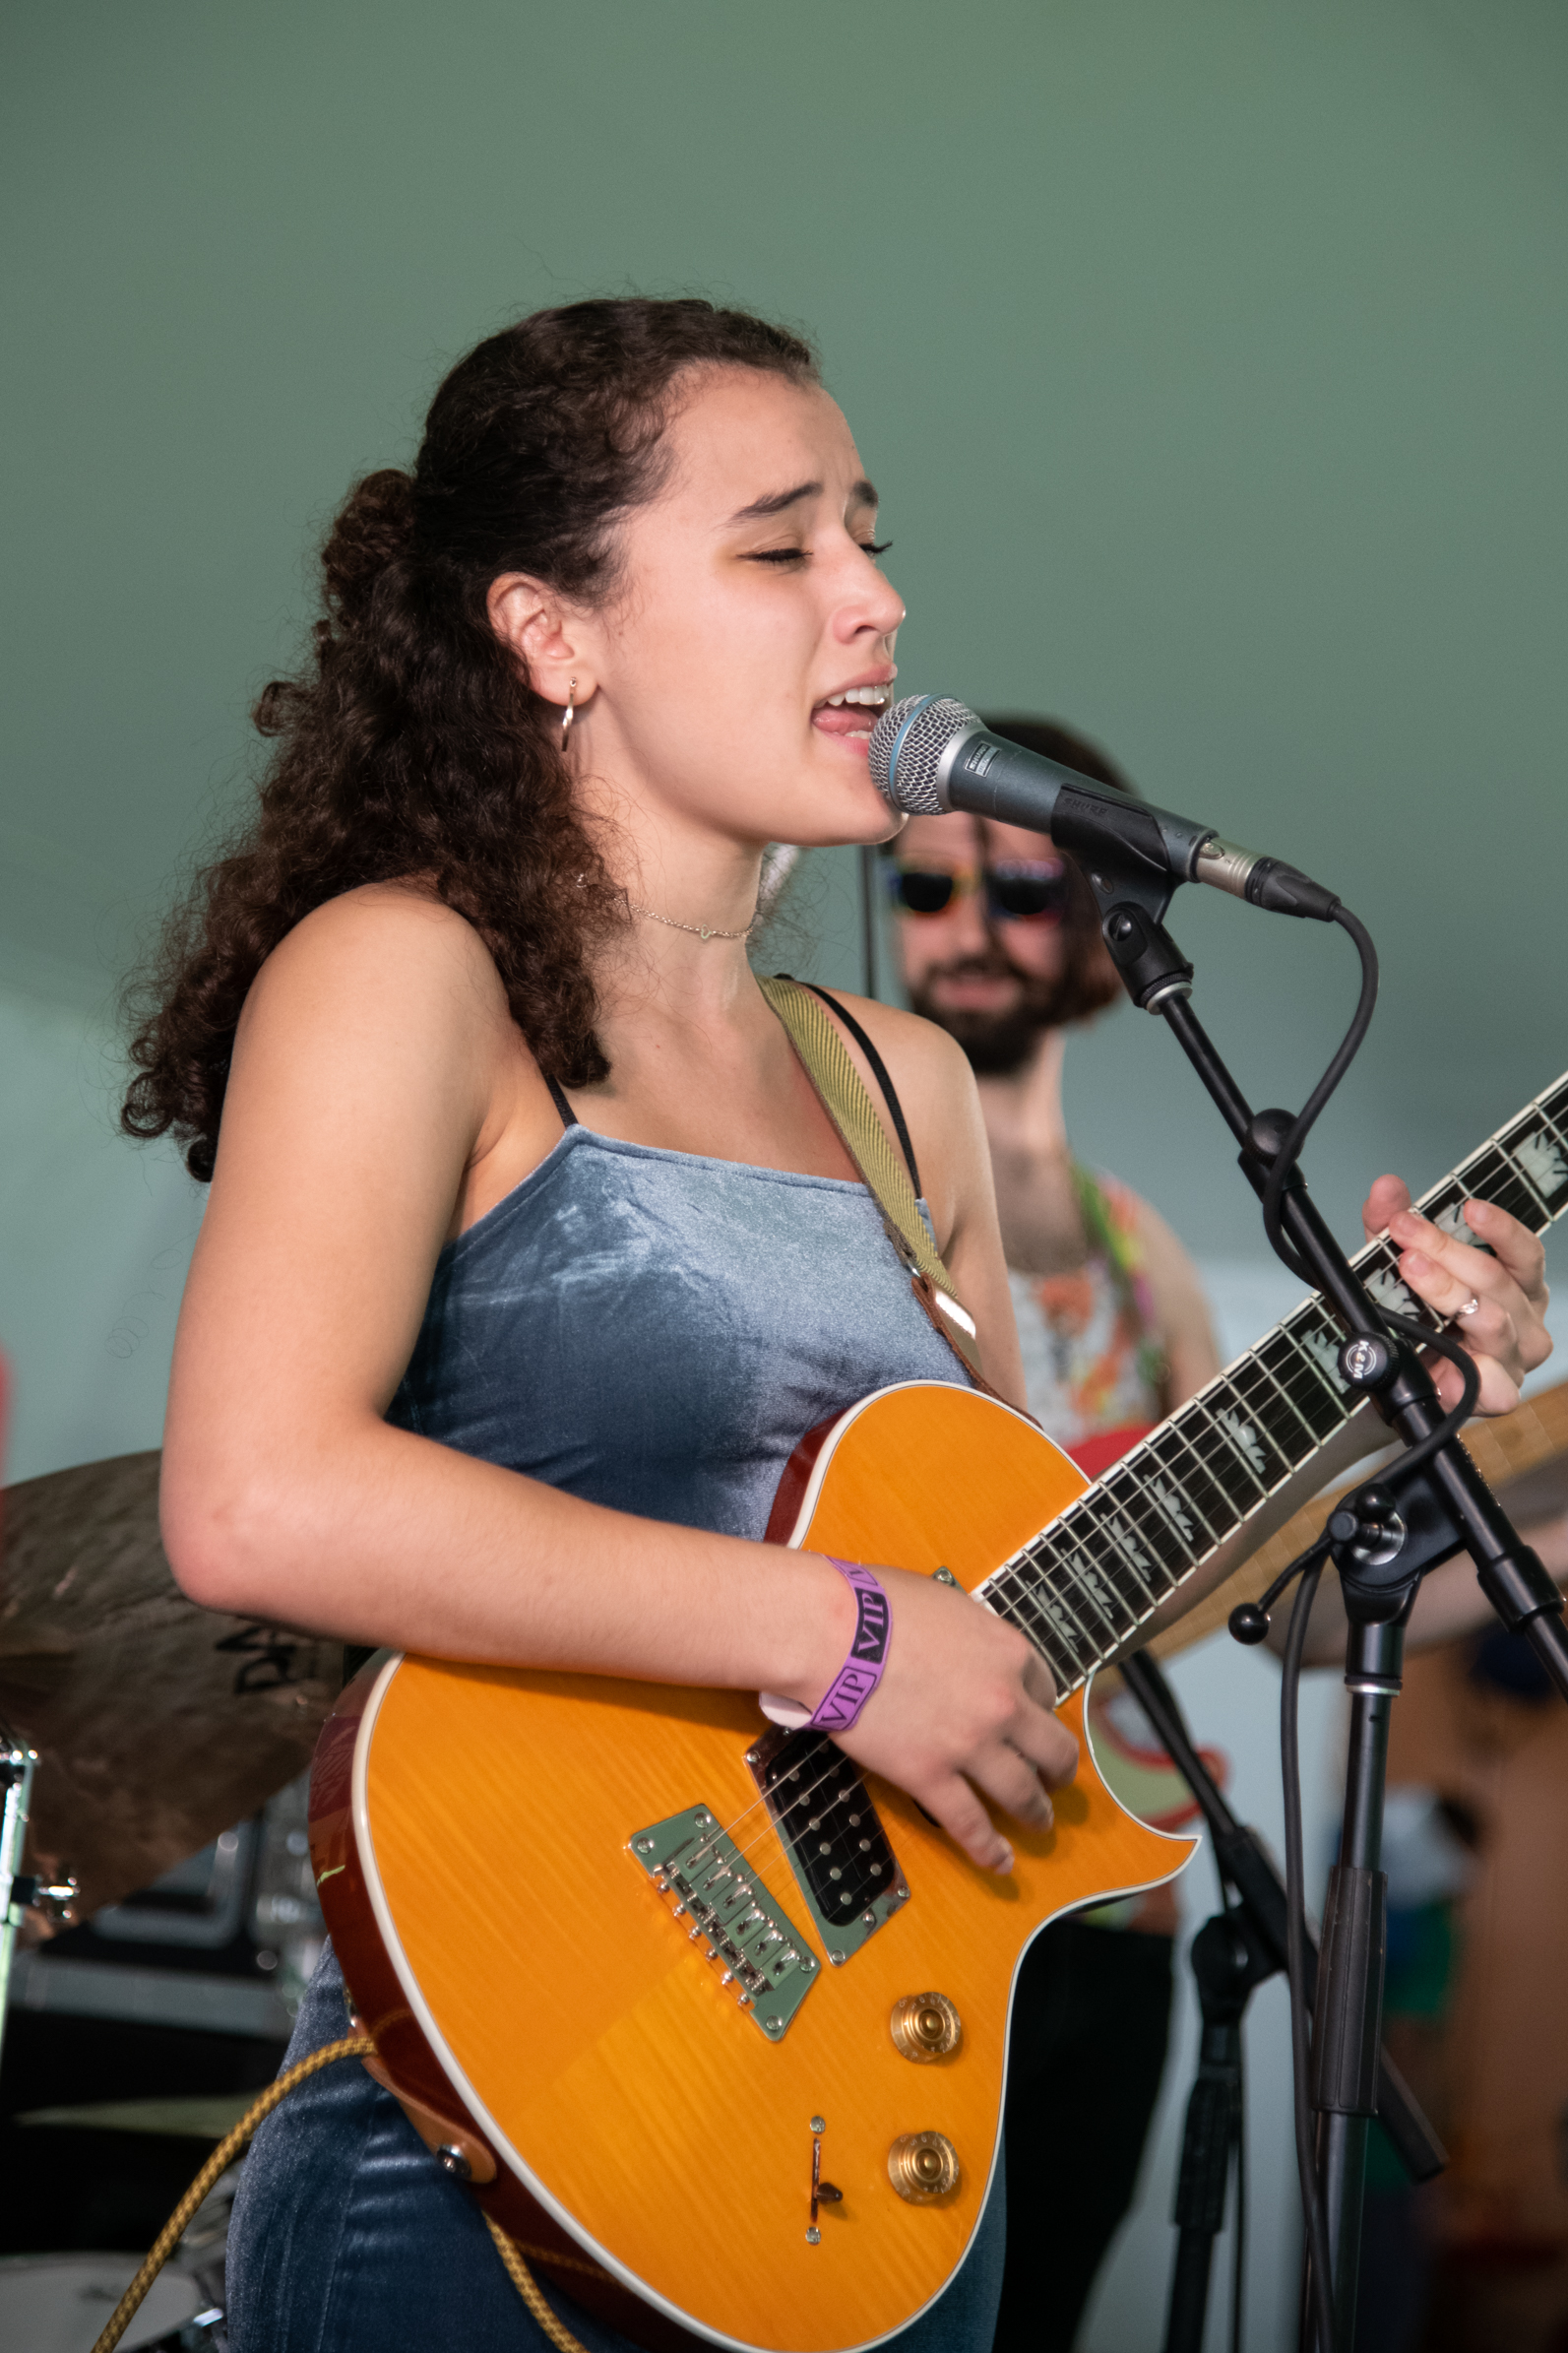 Lillimure bringing a smooth start to the Chill Tent Stage © 2019 Lynda Shenkman